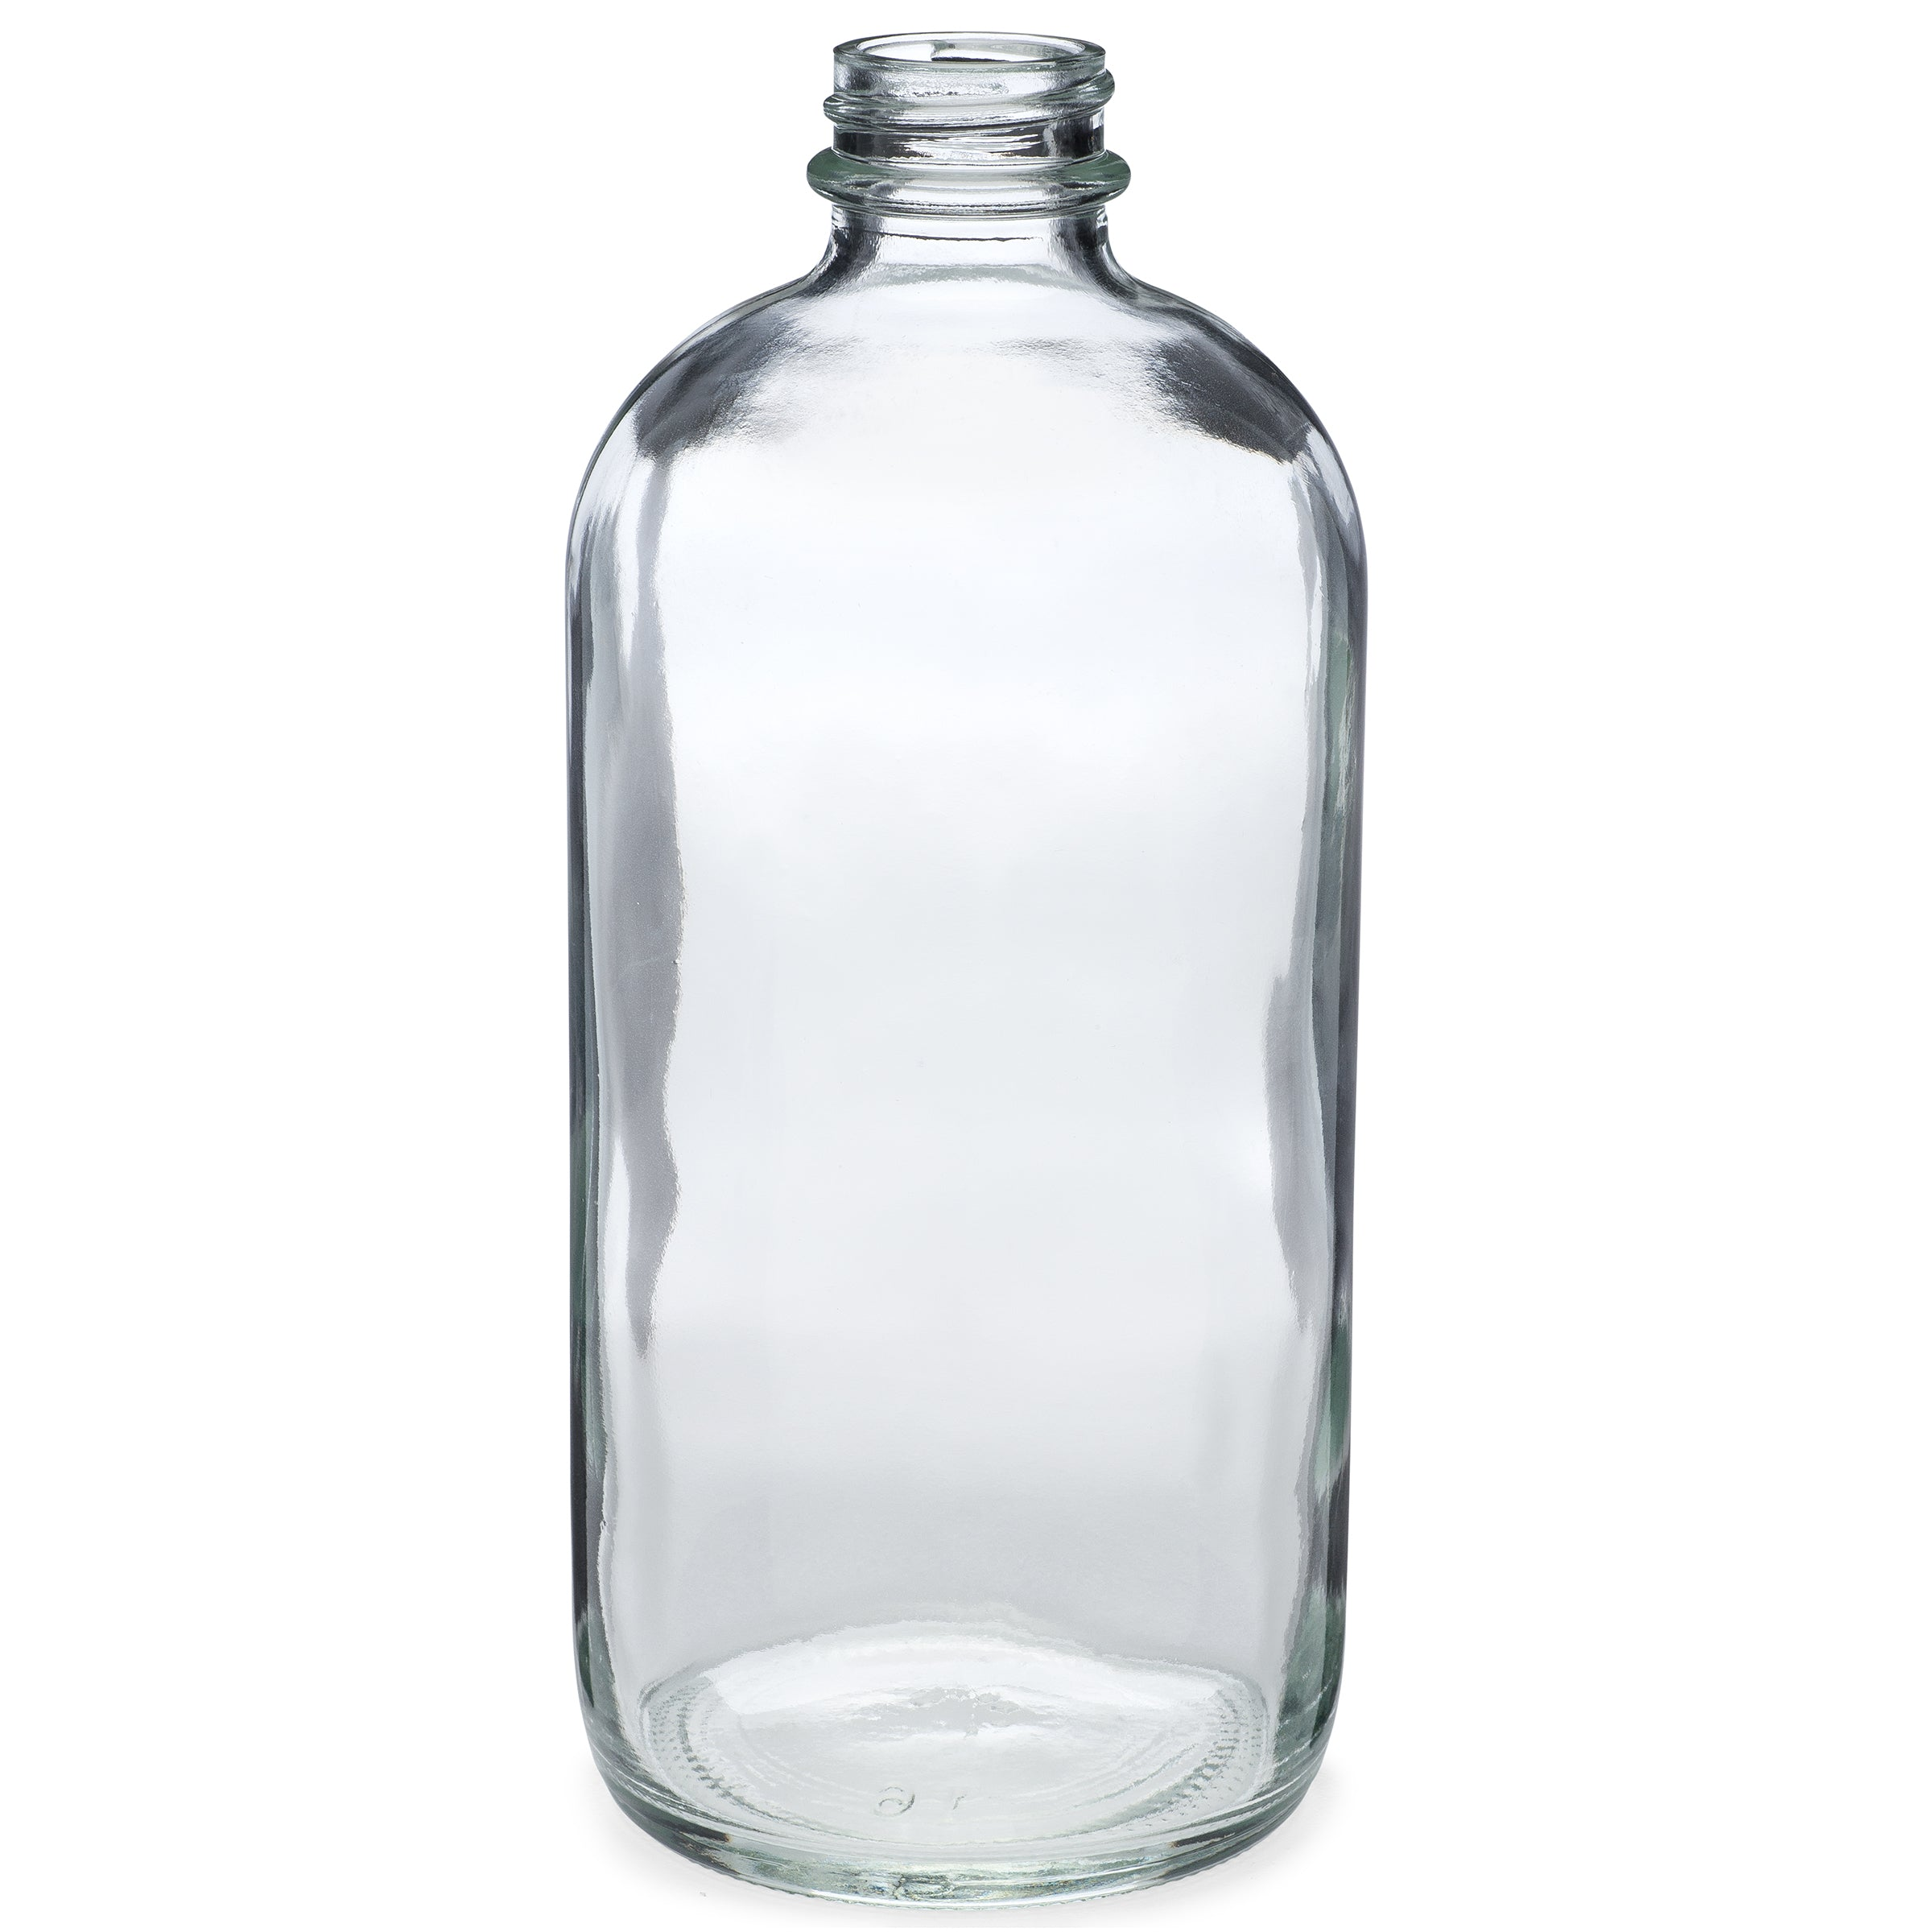 16oz/480ml Flint Boston Round Bottle